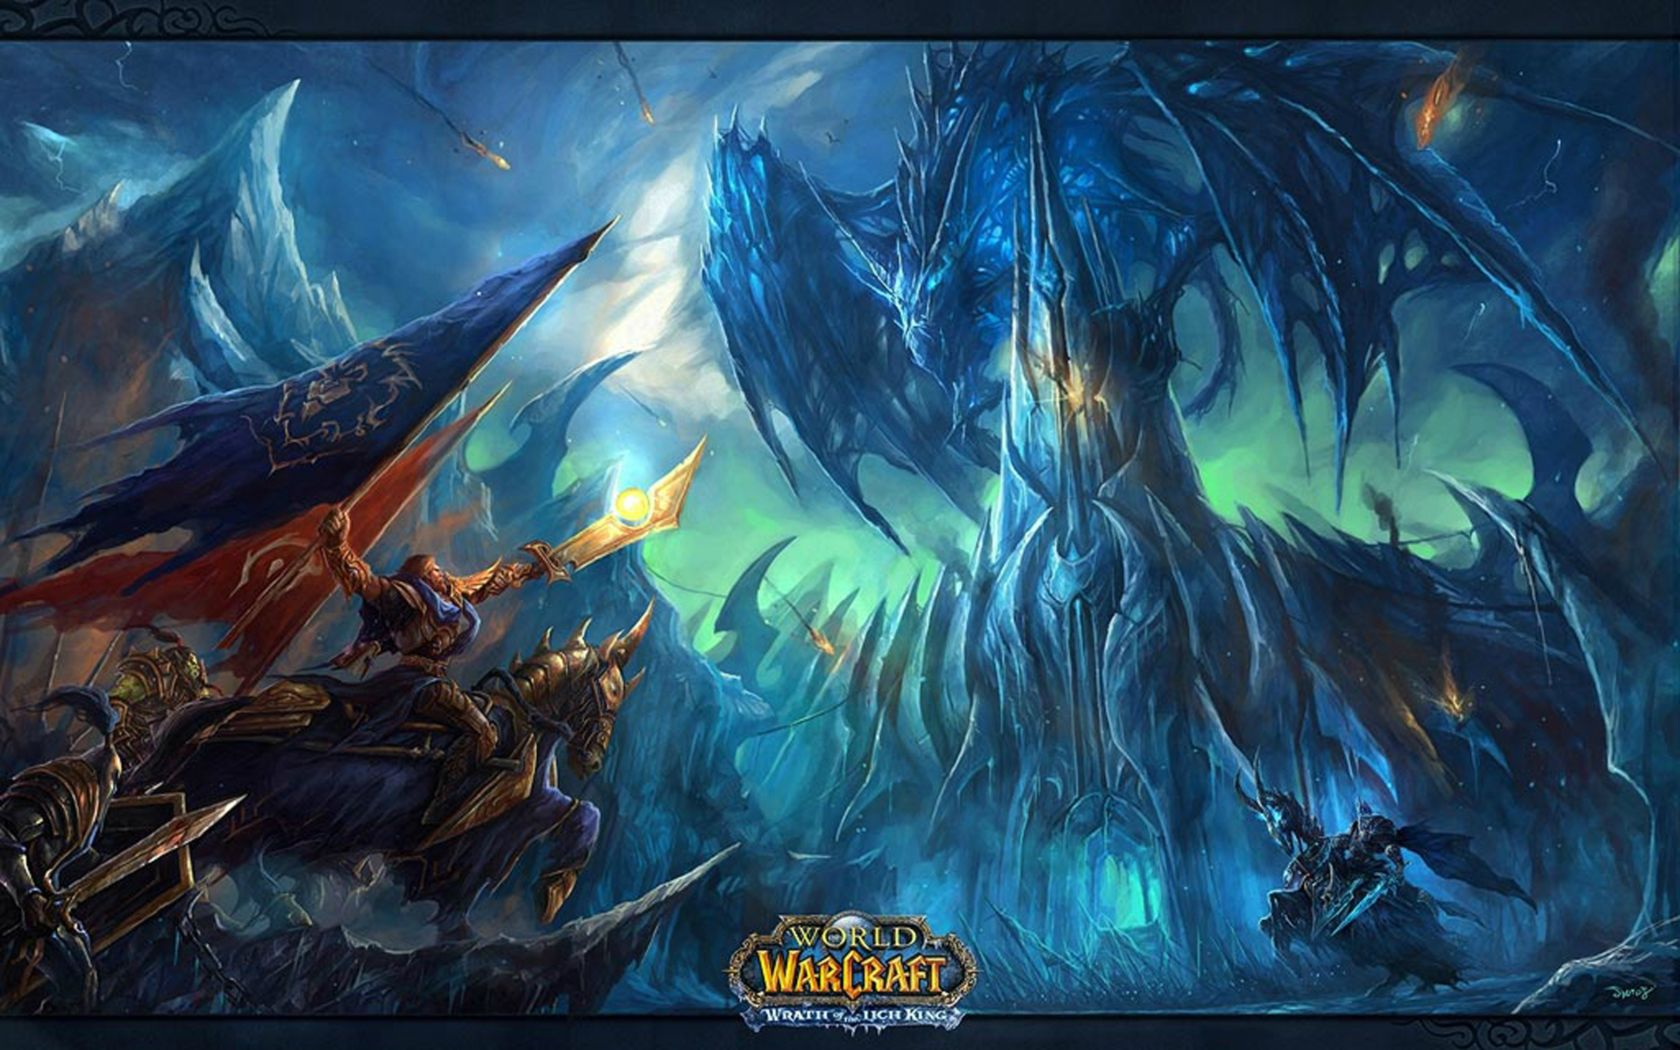 World Of Warcraft (WoW) Wallpapers (50 Wallpapers